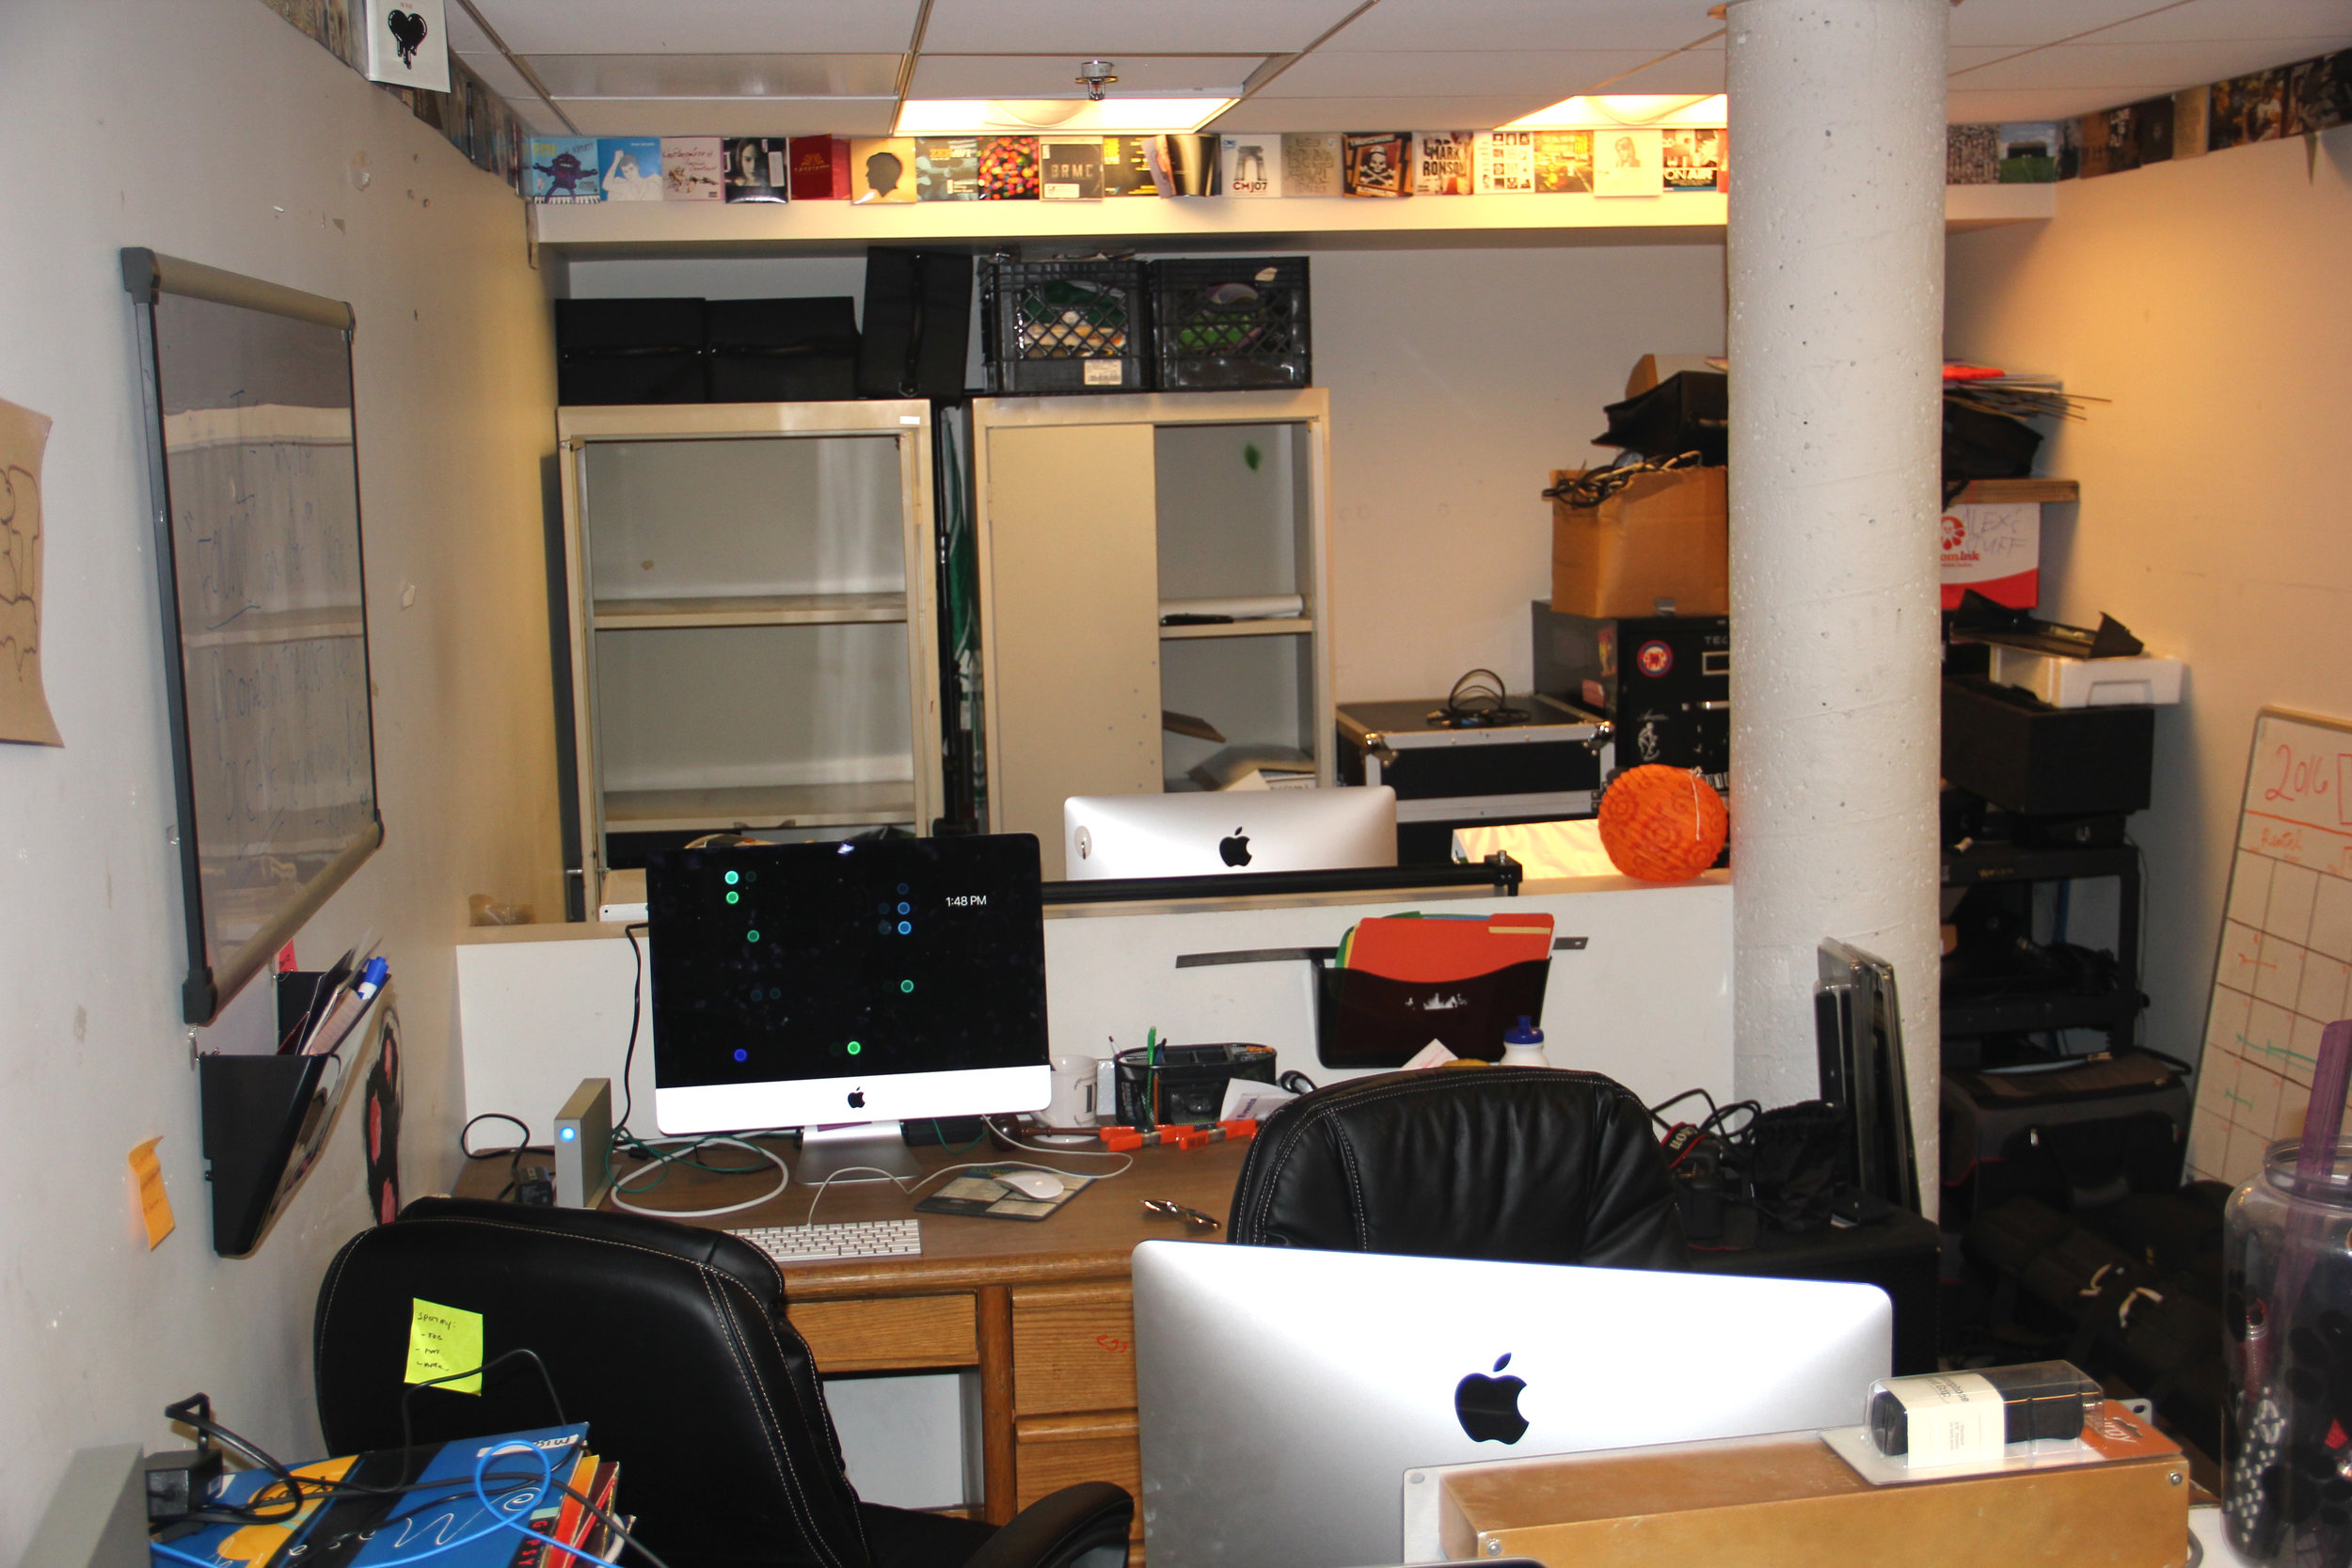 VPS is currently making an office space out of the KPOET storage room